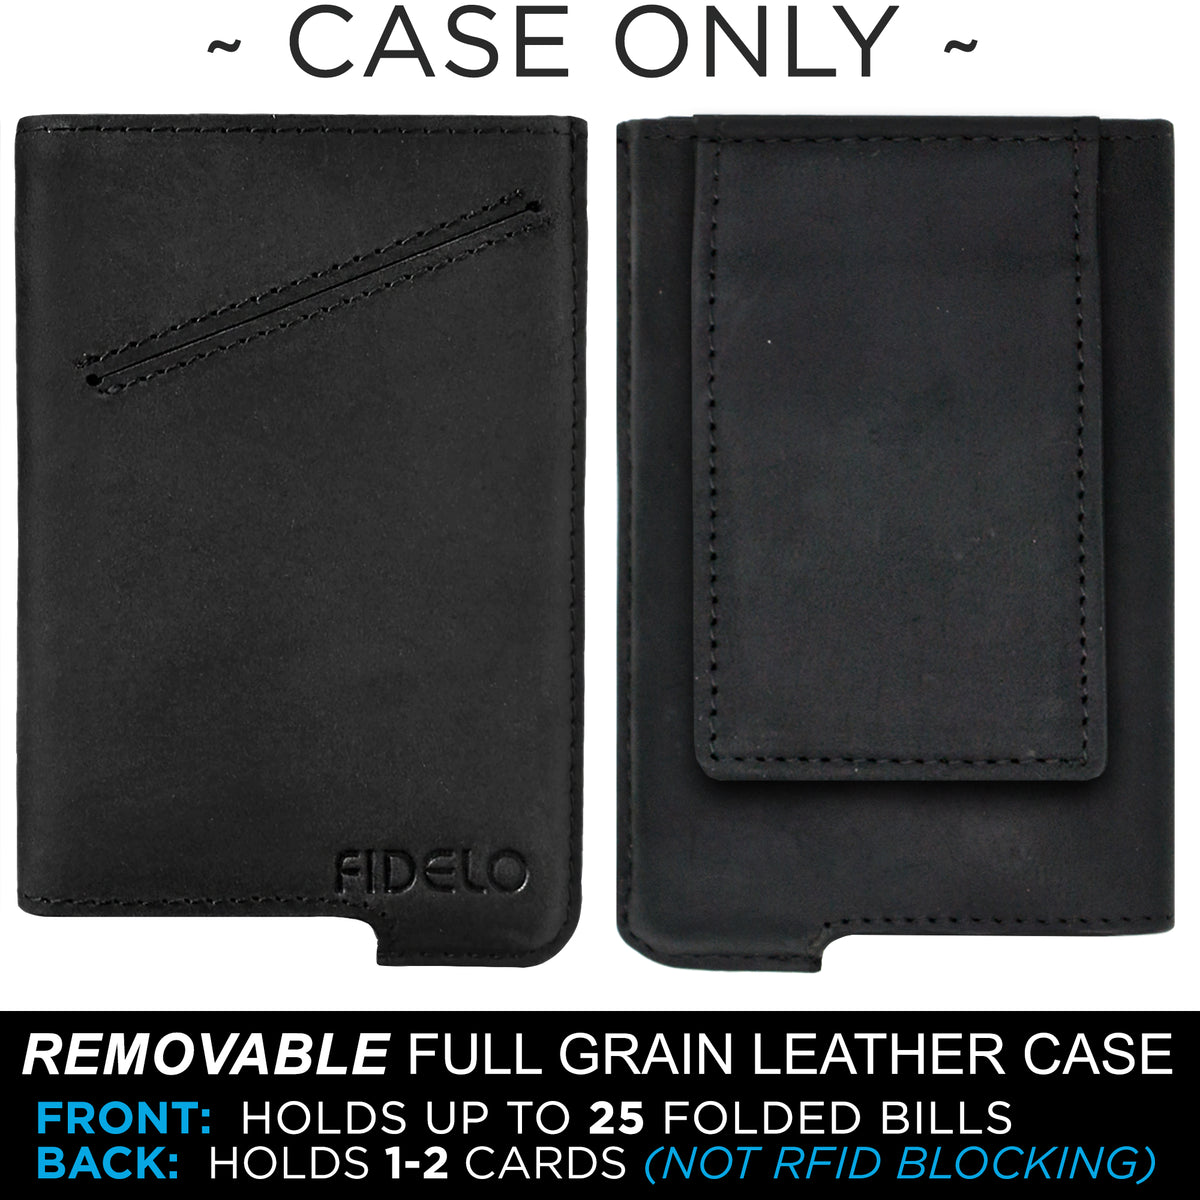 HYBRID CASE ONLY - Black Magnetic Clip Leather